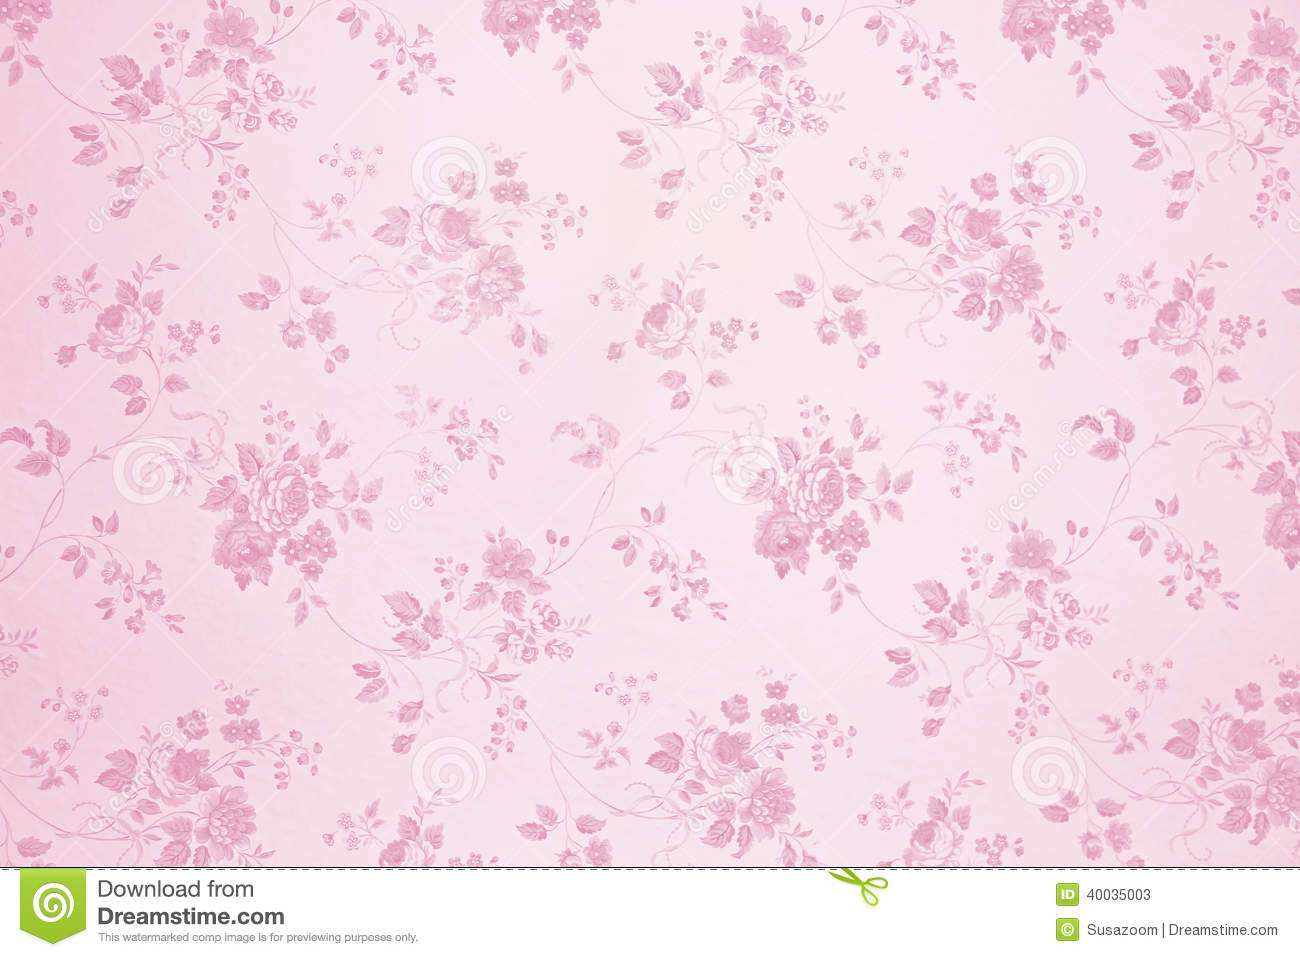 Download Sweet Quotes Wallpapers Floral Wallpaper Light Pink Stock Image Image 40035003